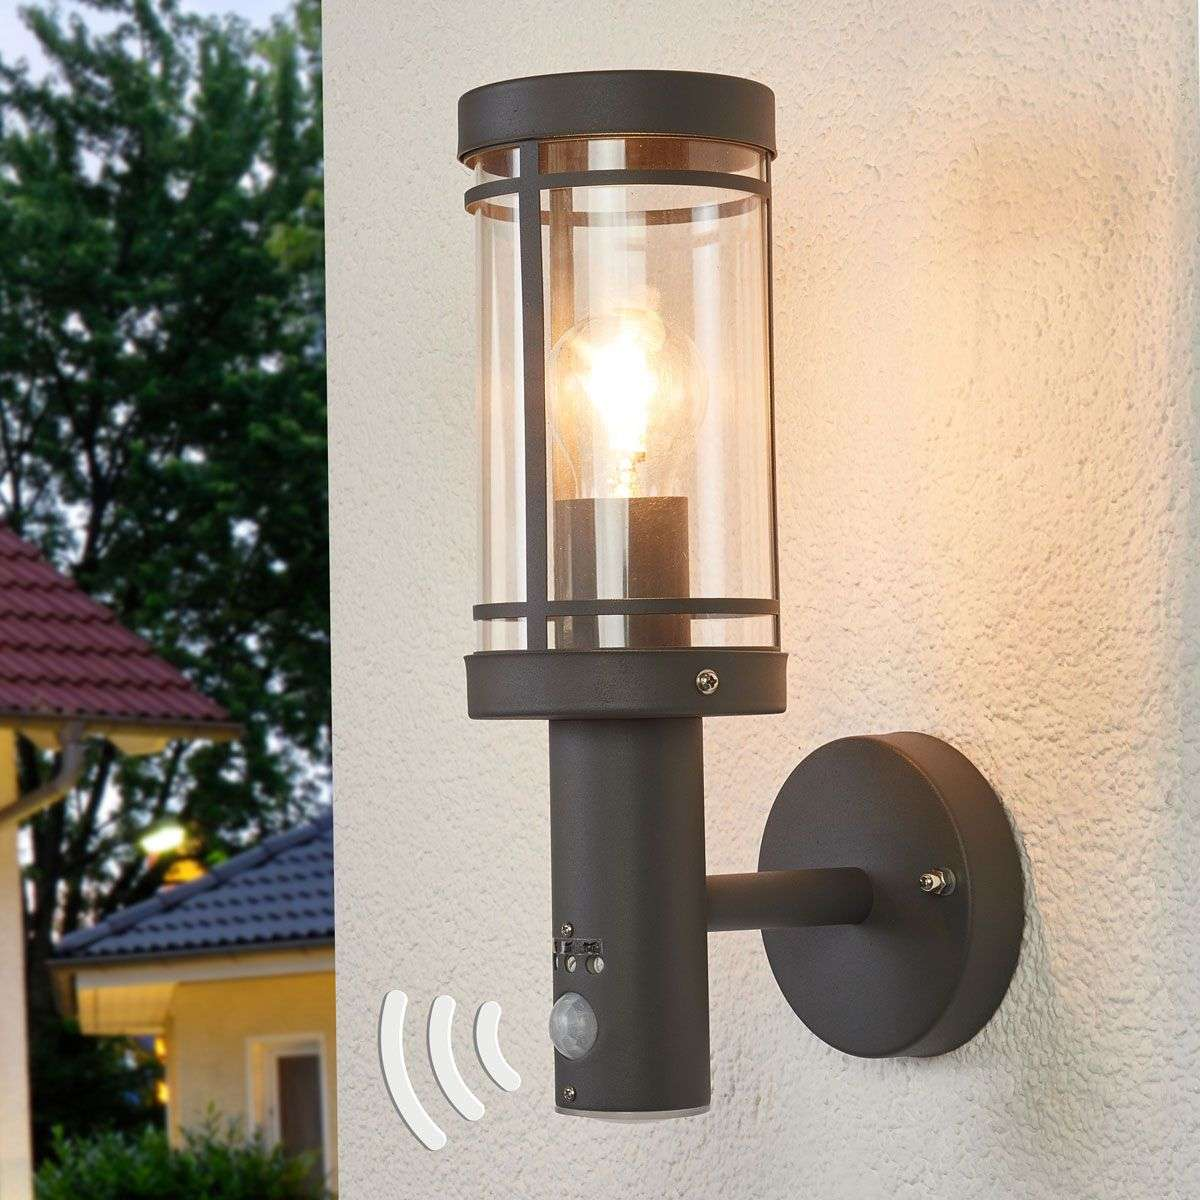 Motion Detector Wall Light Djori For Outdoors